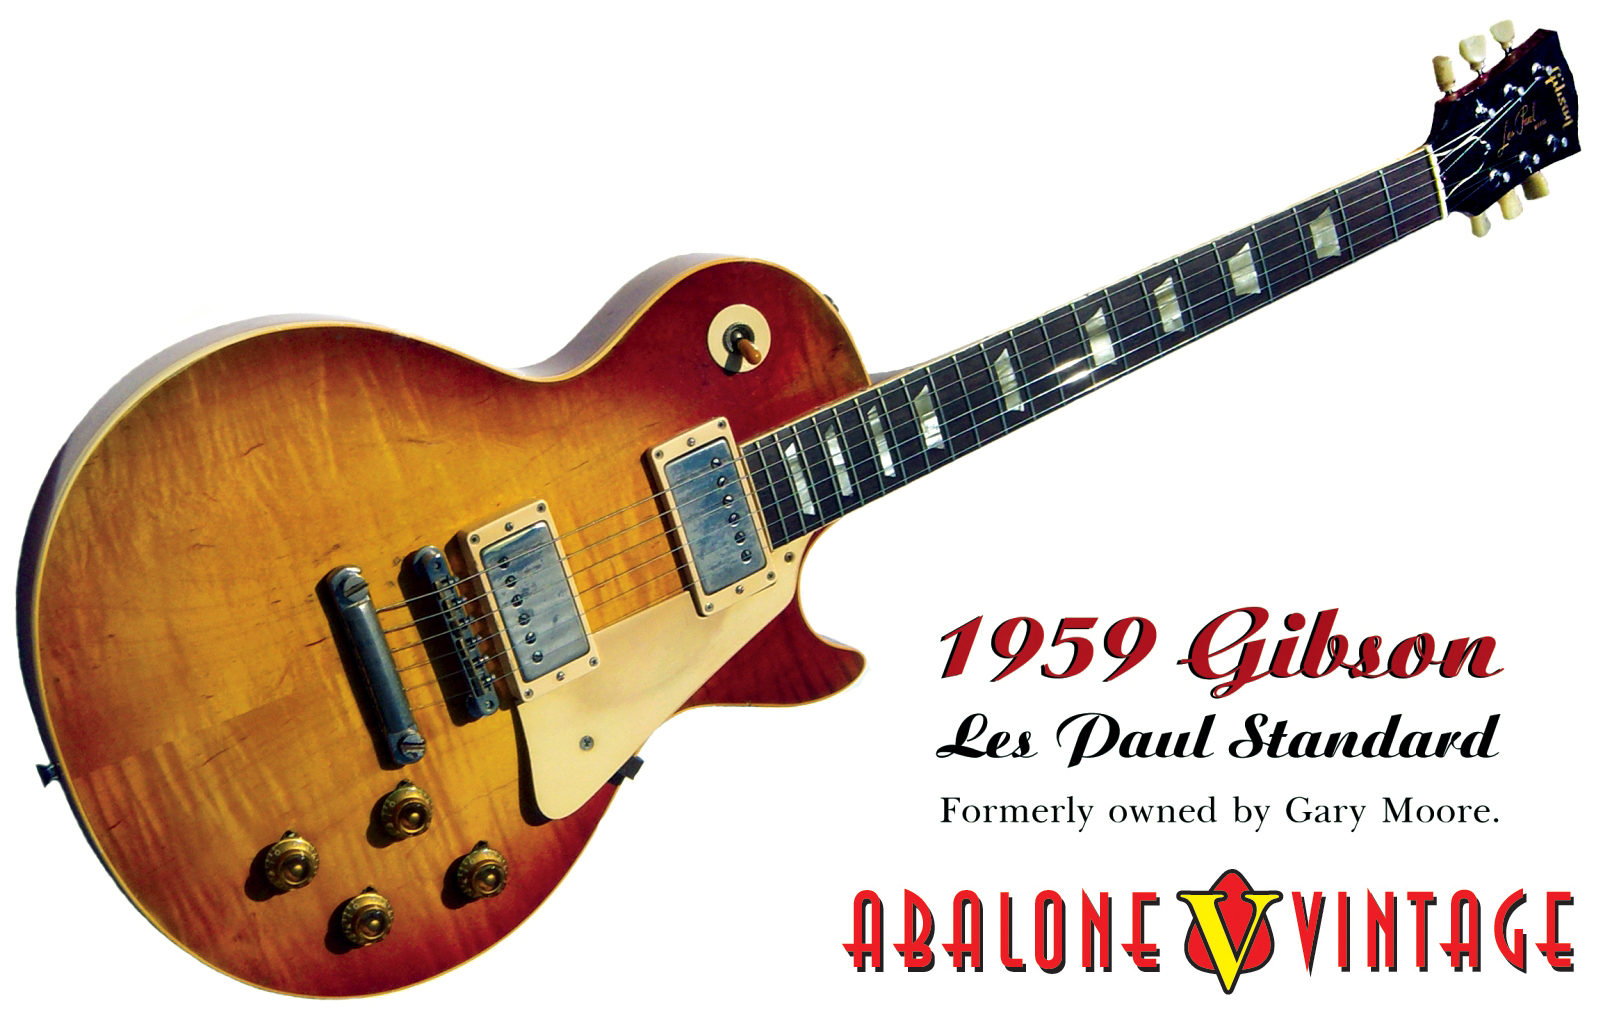 http://www.abalonevintage.com/guitar_gibson_1958_les_paul_standard_gary_moore_owned_w_small.jpg